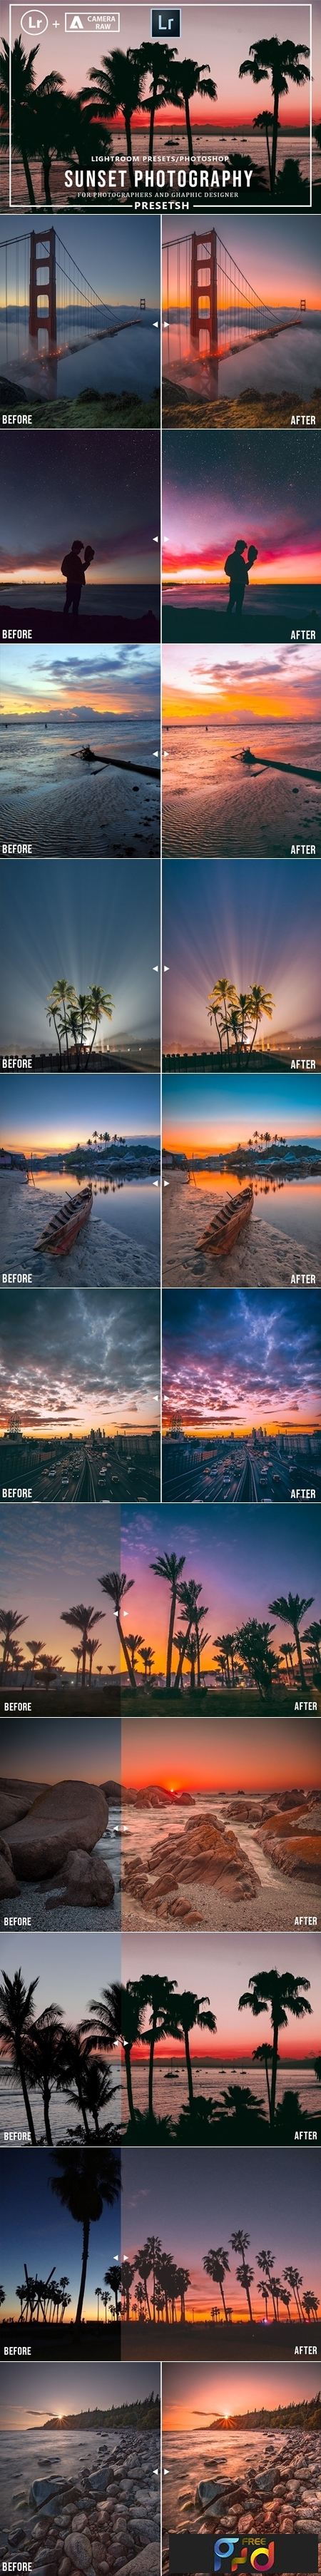 Sunset photography Lightroom Presets 3675865 1